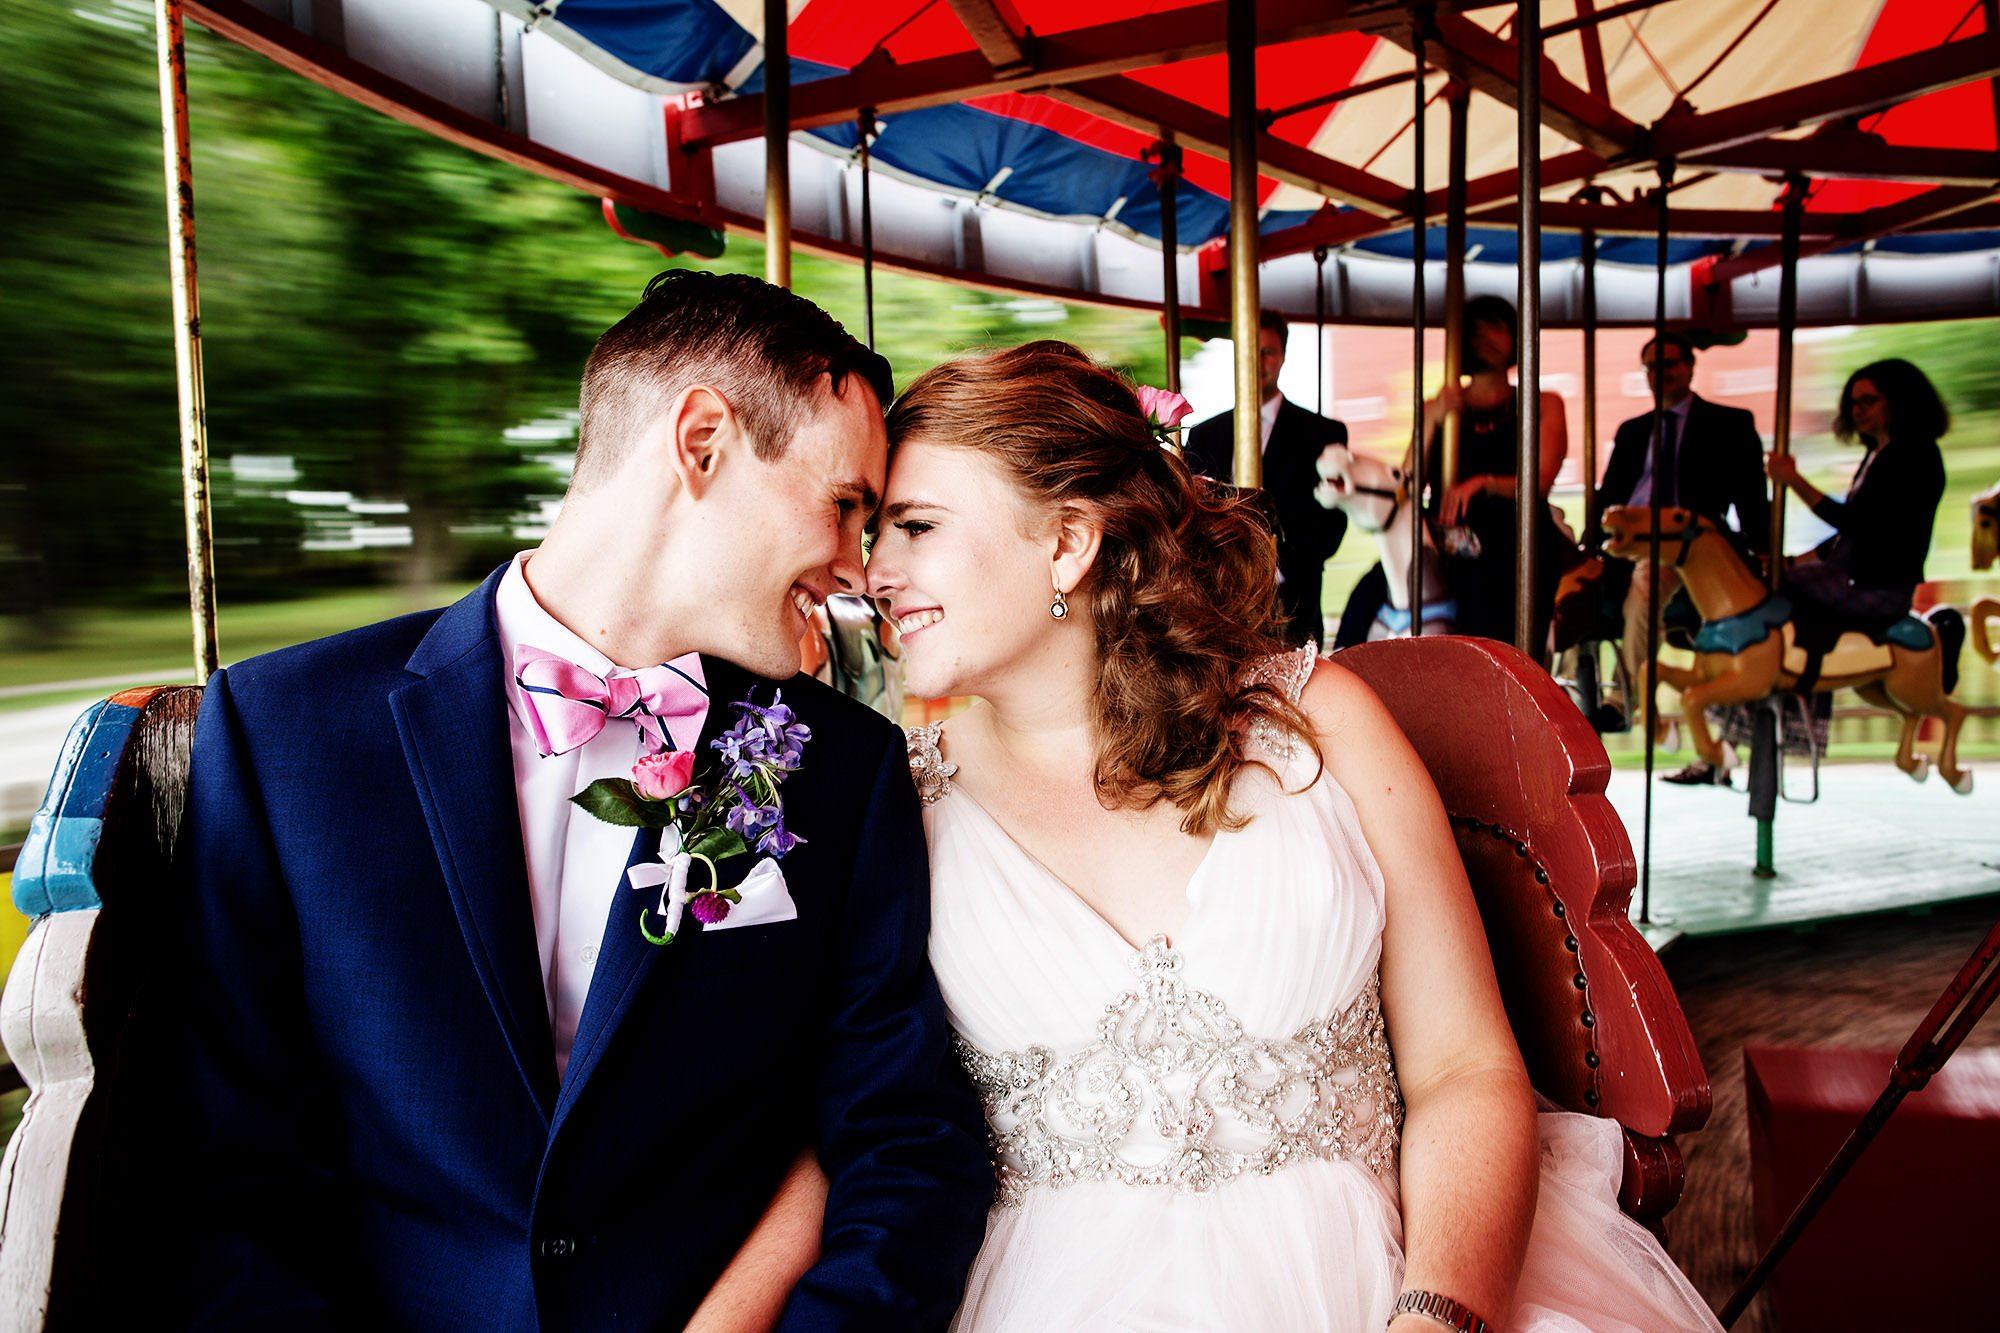 Shelburne Museum Wedding  I  The couple pose on the merry-go-round in Shelburne, VT.